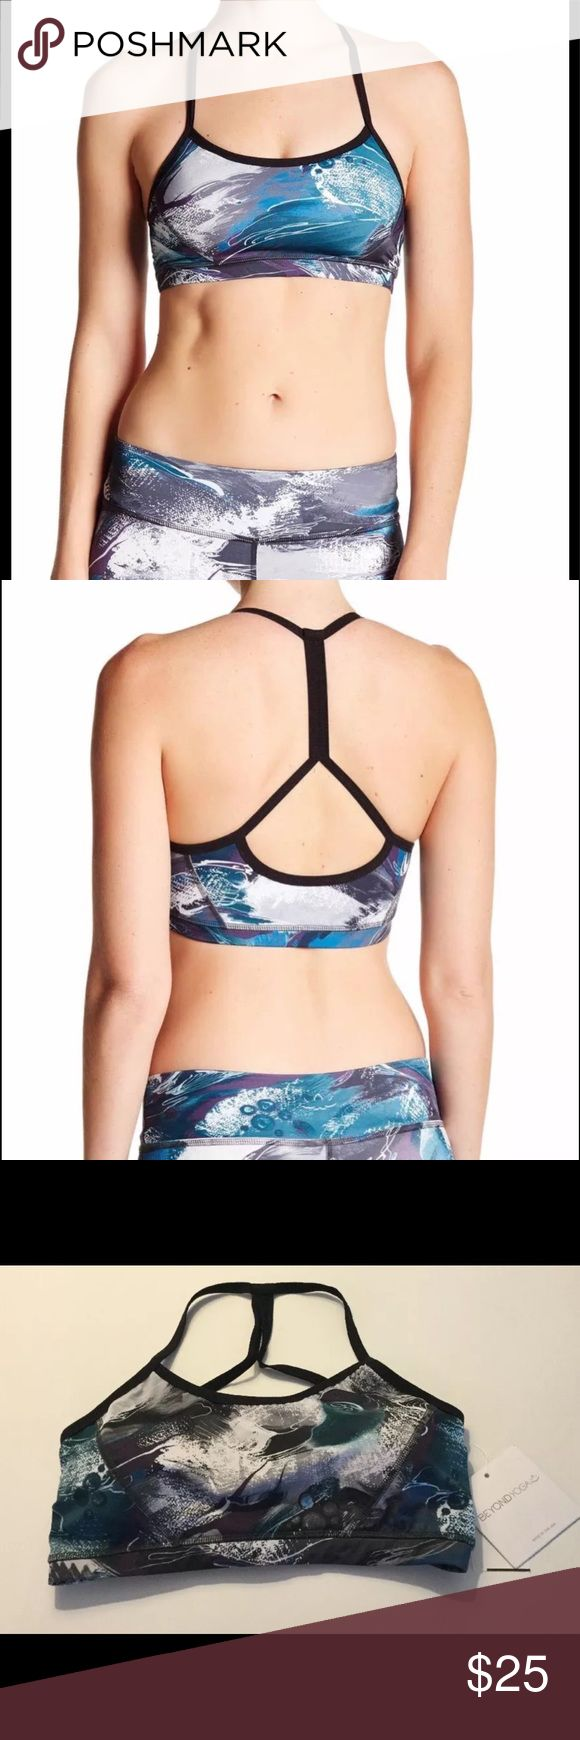 Beyond Yoga Lux Keyhole Back Sports Bra XS XL Print is called Winter Store. Removable bra pads Skinny strap racerback Supplex shelf bra Open back detail Medium support Quick drying 4-way stretch 82% polyester, 18% lycra Beyond Yoga Intimates & Sleepwear Bras